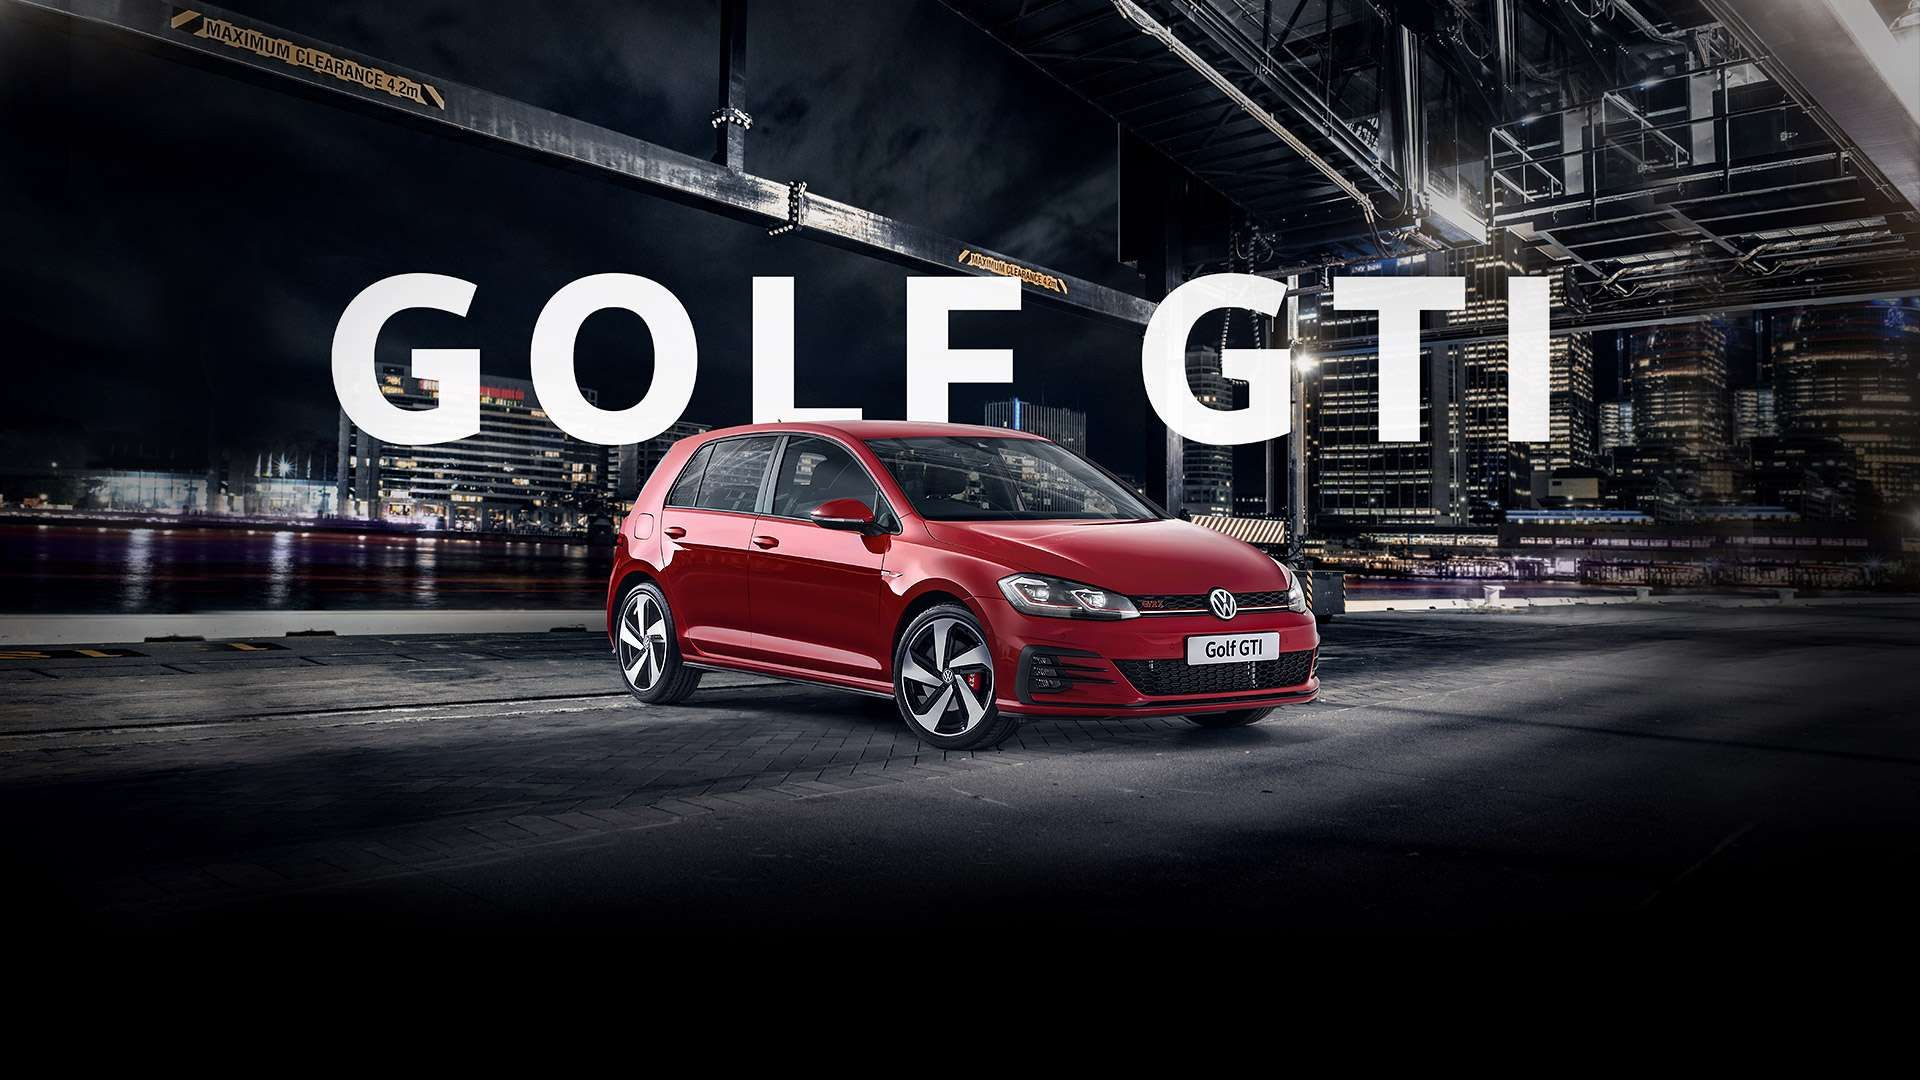 Tornado Red Golf GTI getting into the parking at night